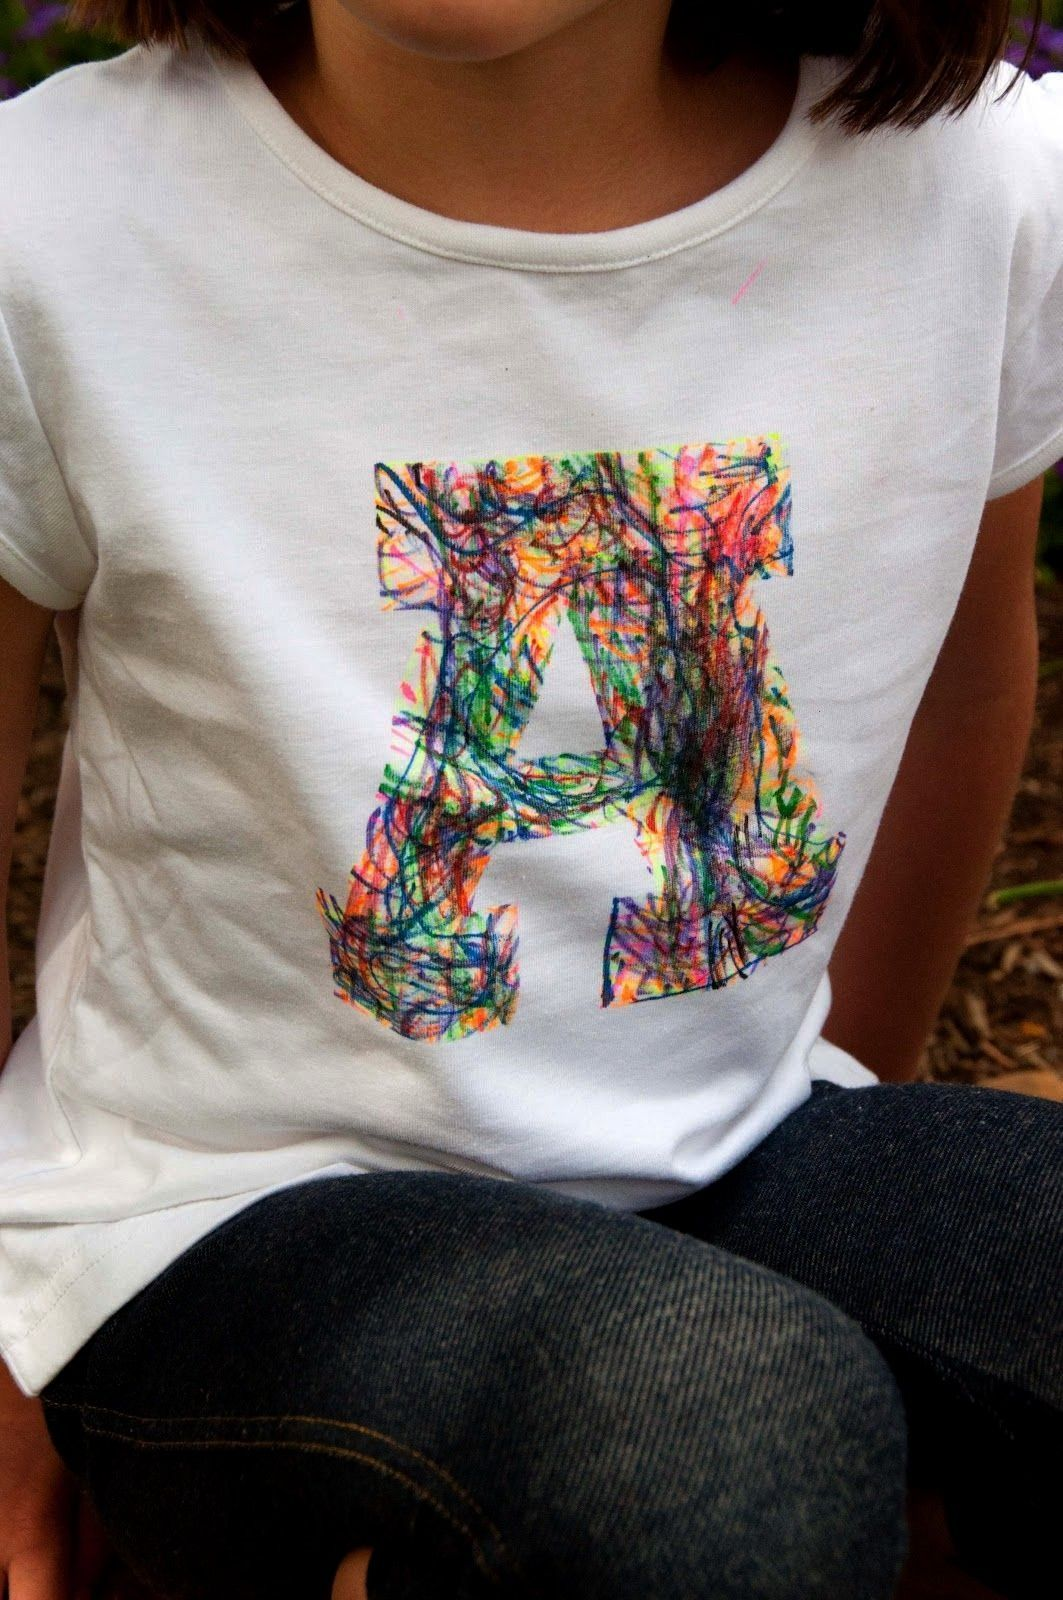 Nest Craft Scribble Initial TShirt Tutorial from  What a fun craft using sharpie fabric markers and freezer paper Our little girl would love it Source by lynarri aestheti...